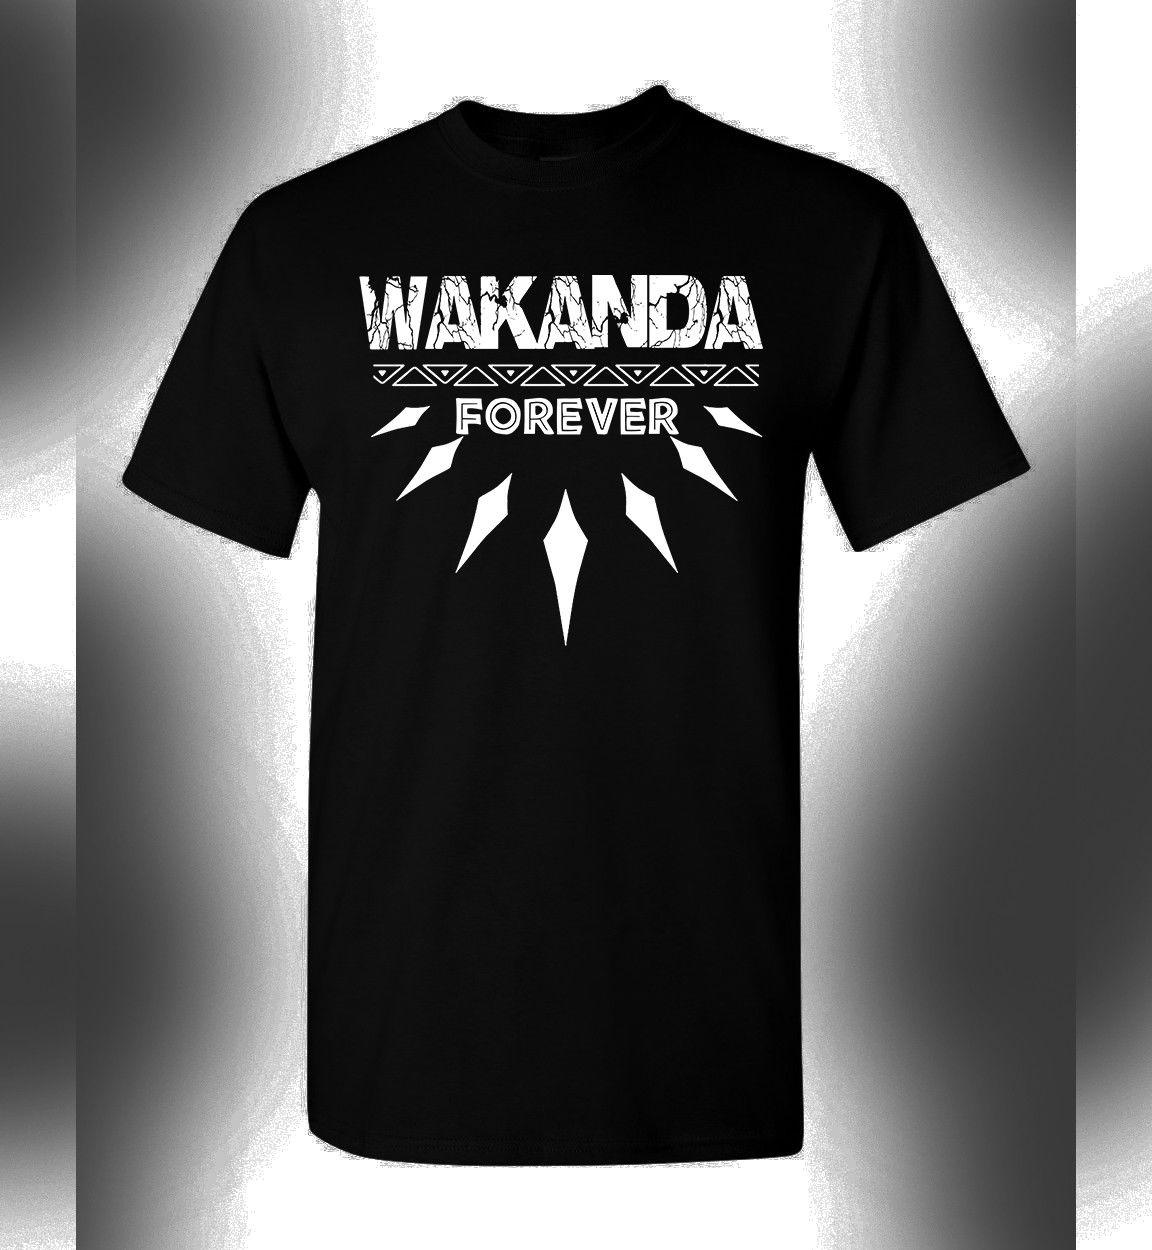 afd5fb89 Black Panther T-Shirt Wakanda Forever King T'Challa Avengers